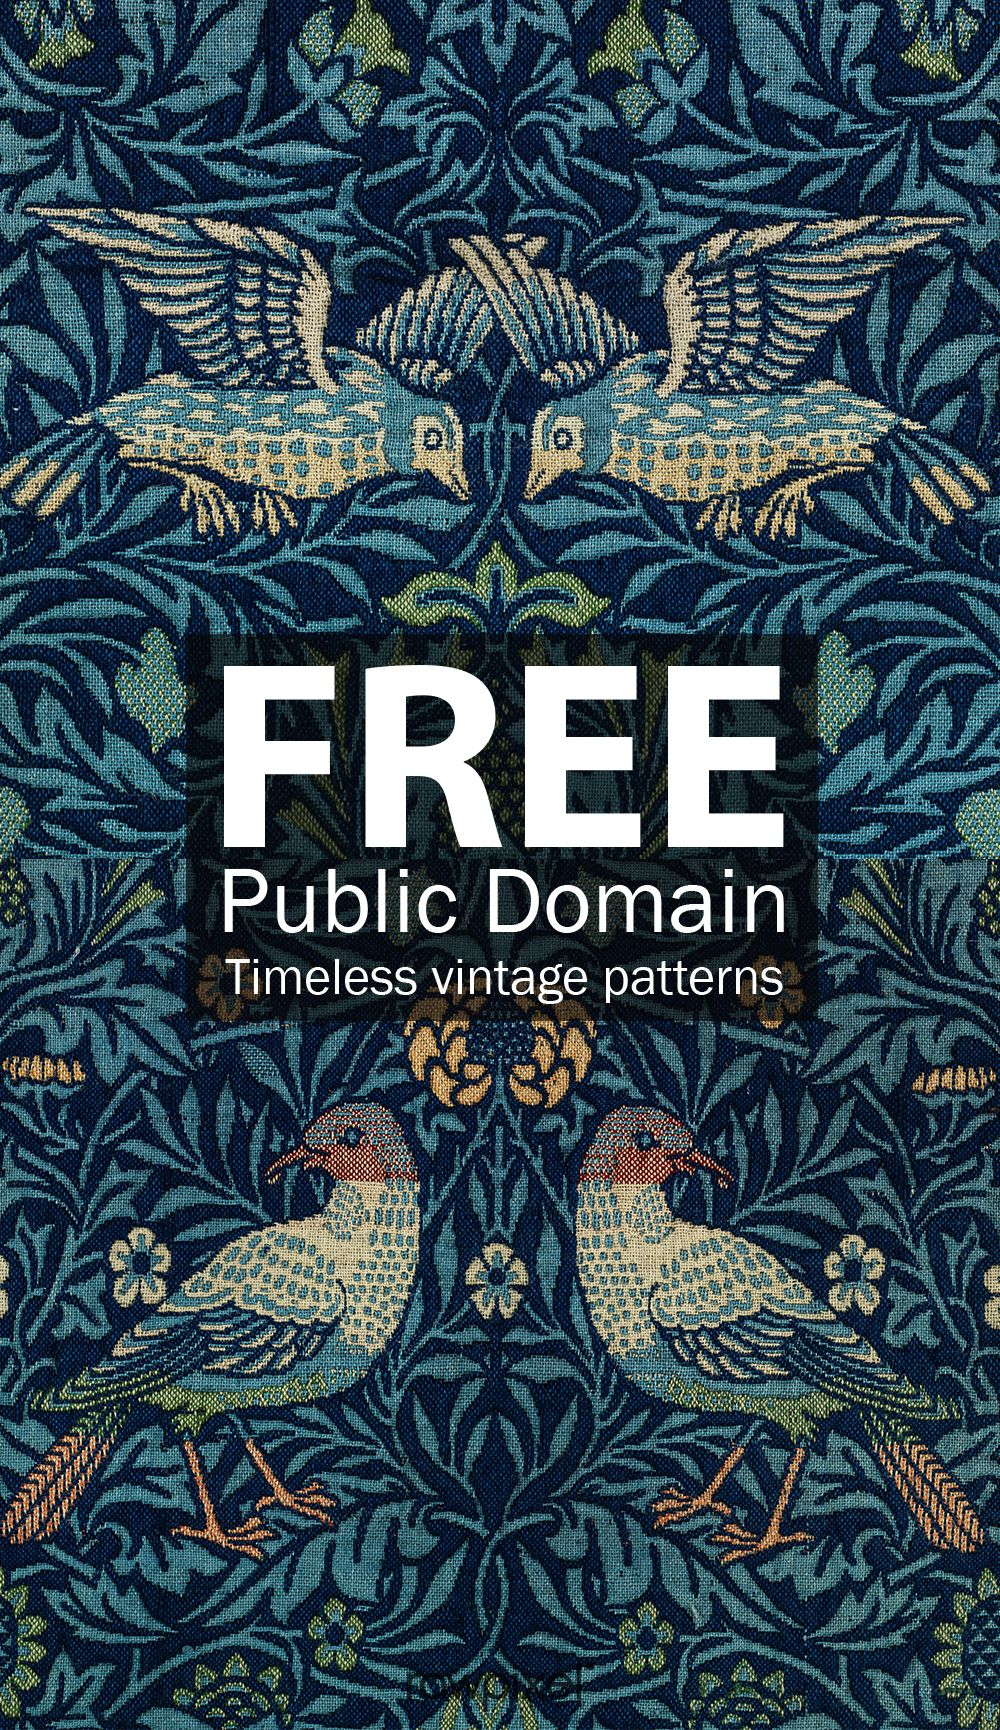 Download Timeless Vintage Patterns By William Morris A 19th Century English Celebrated Designer Crafts Vintage Patterns William Morris Designs William Morris